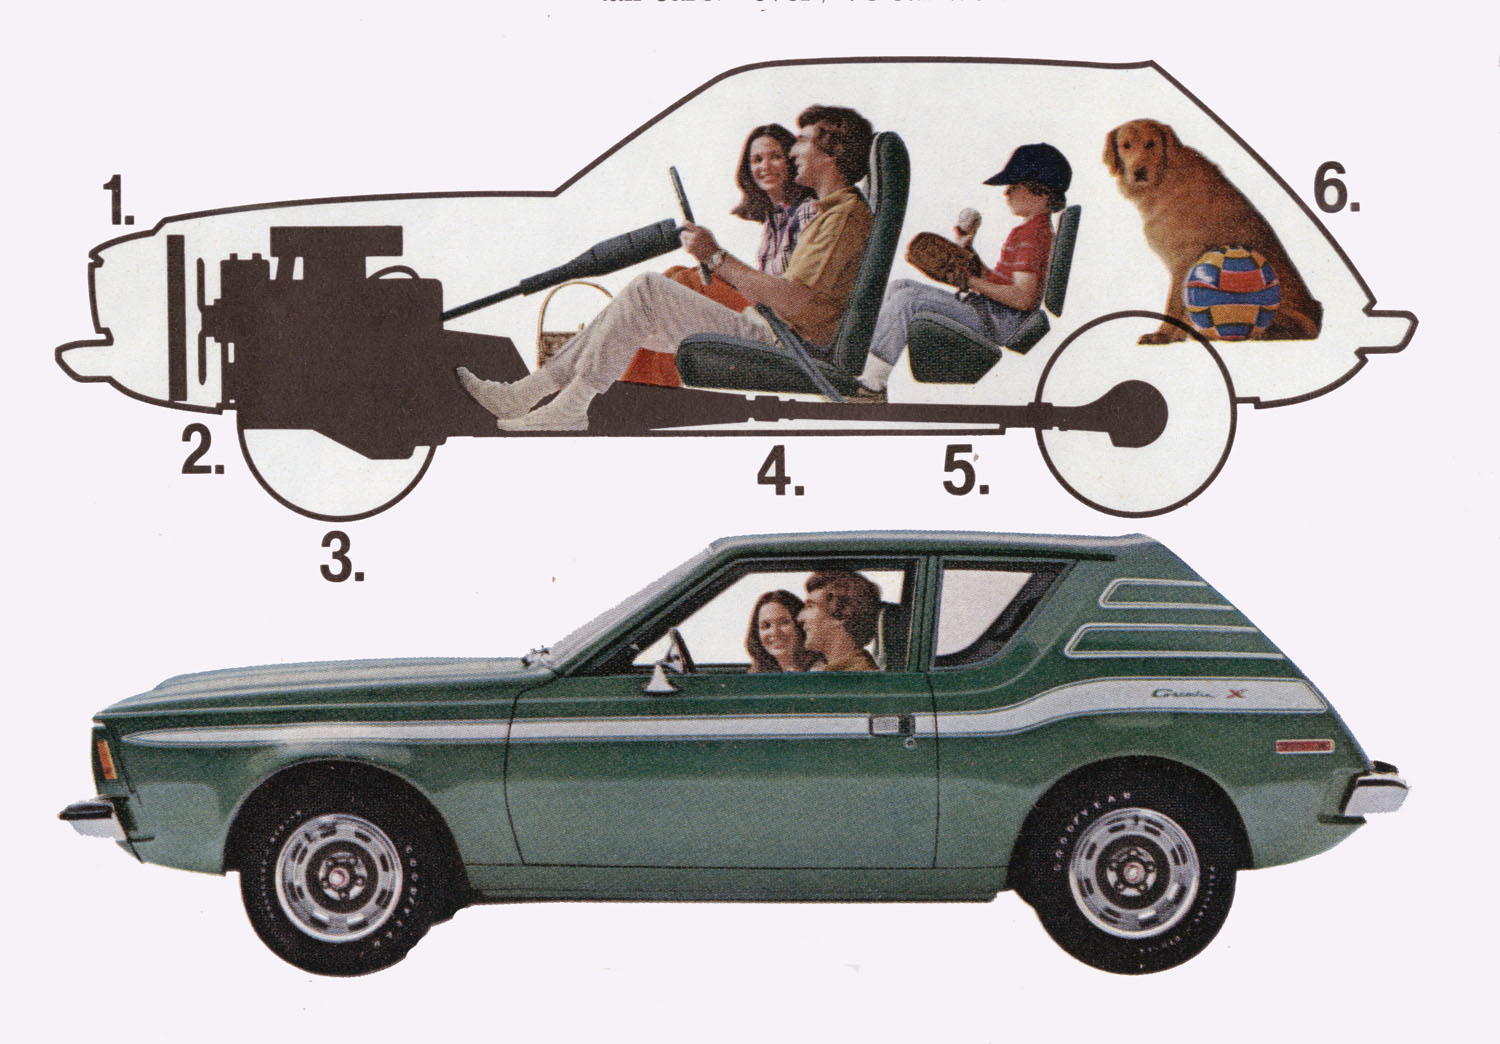 1974 Amc Gremlin Wiring Diagram Archive Of Automotive Jeep J 20